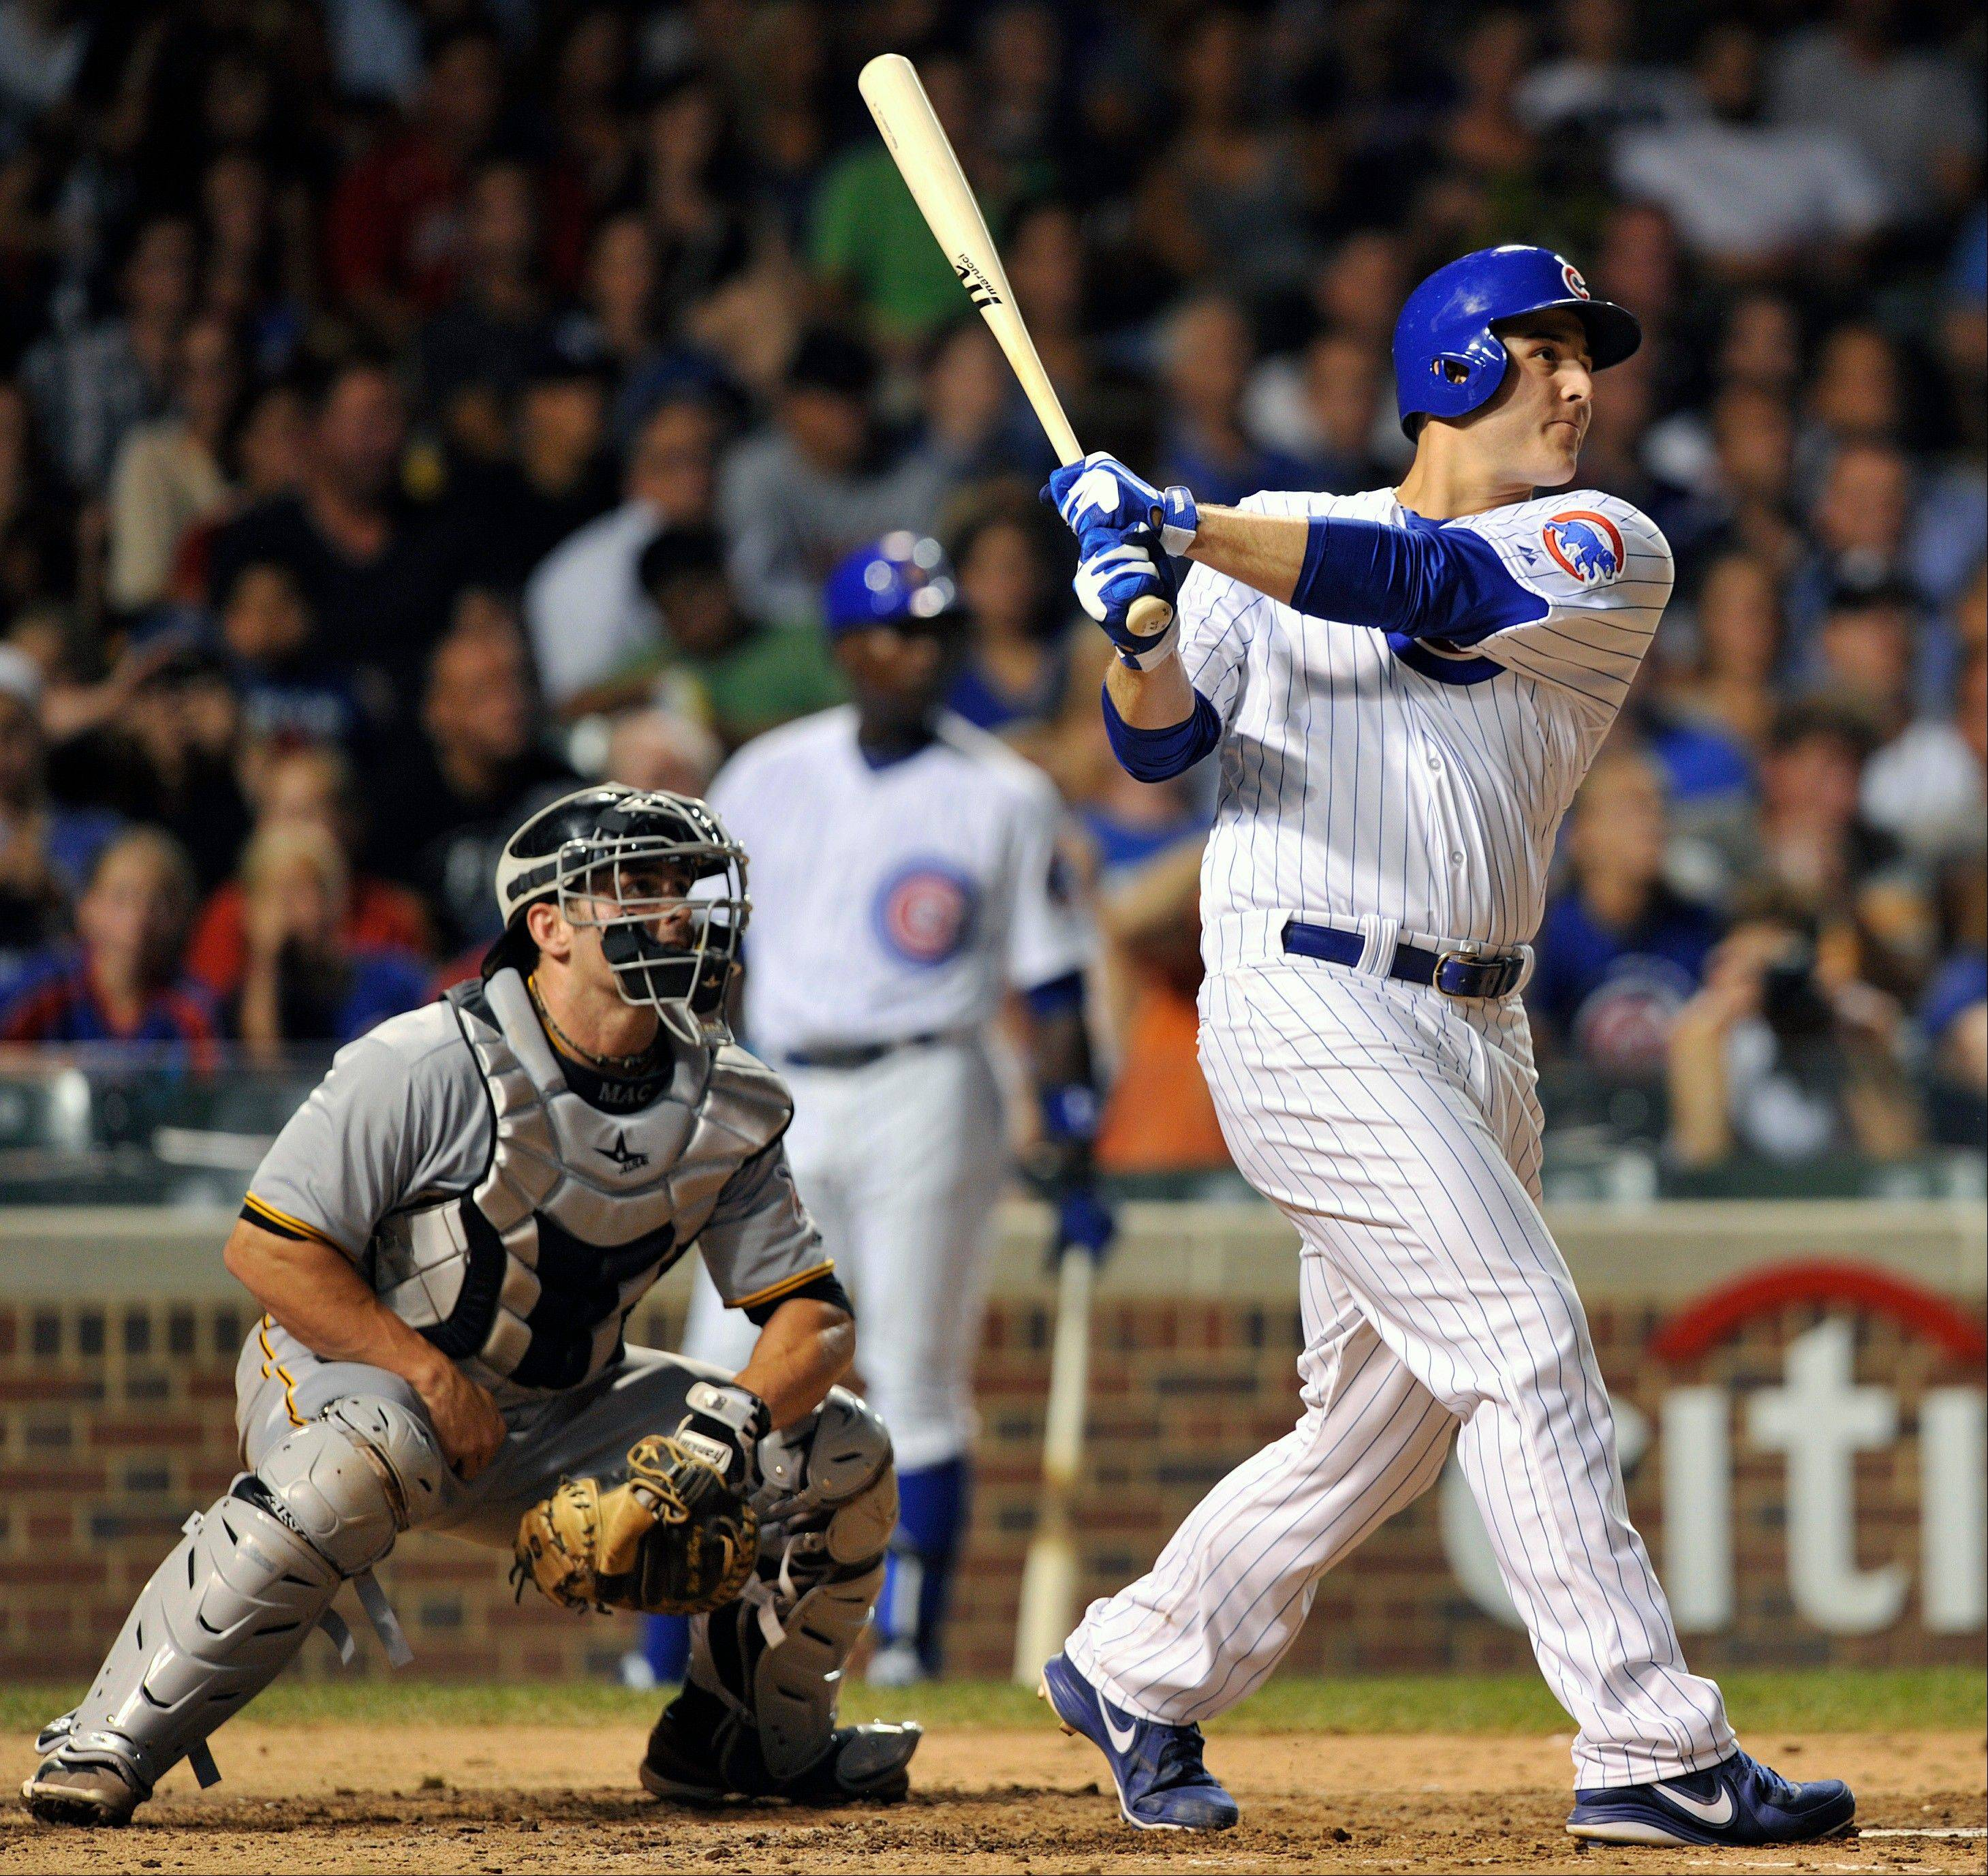 Pittsburgh Pirates catcher Michael McKenry watches as Anthony Rizzo follows through on a 3-run home run during the Cubs' victory Monday night.